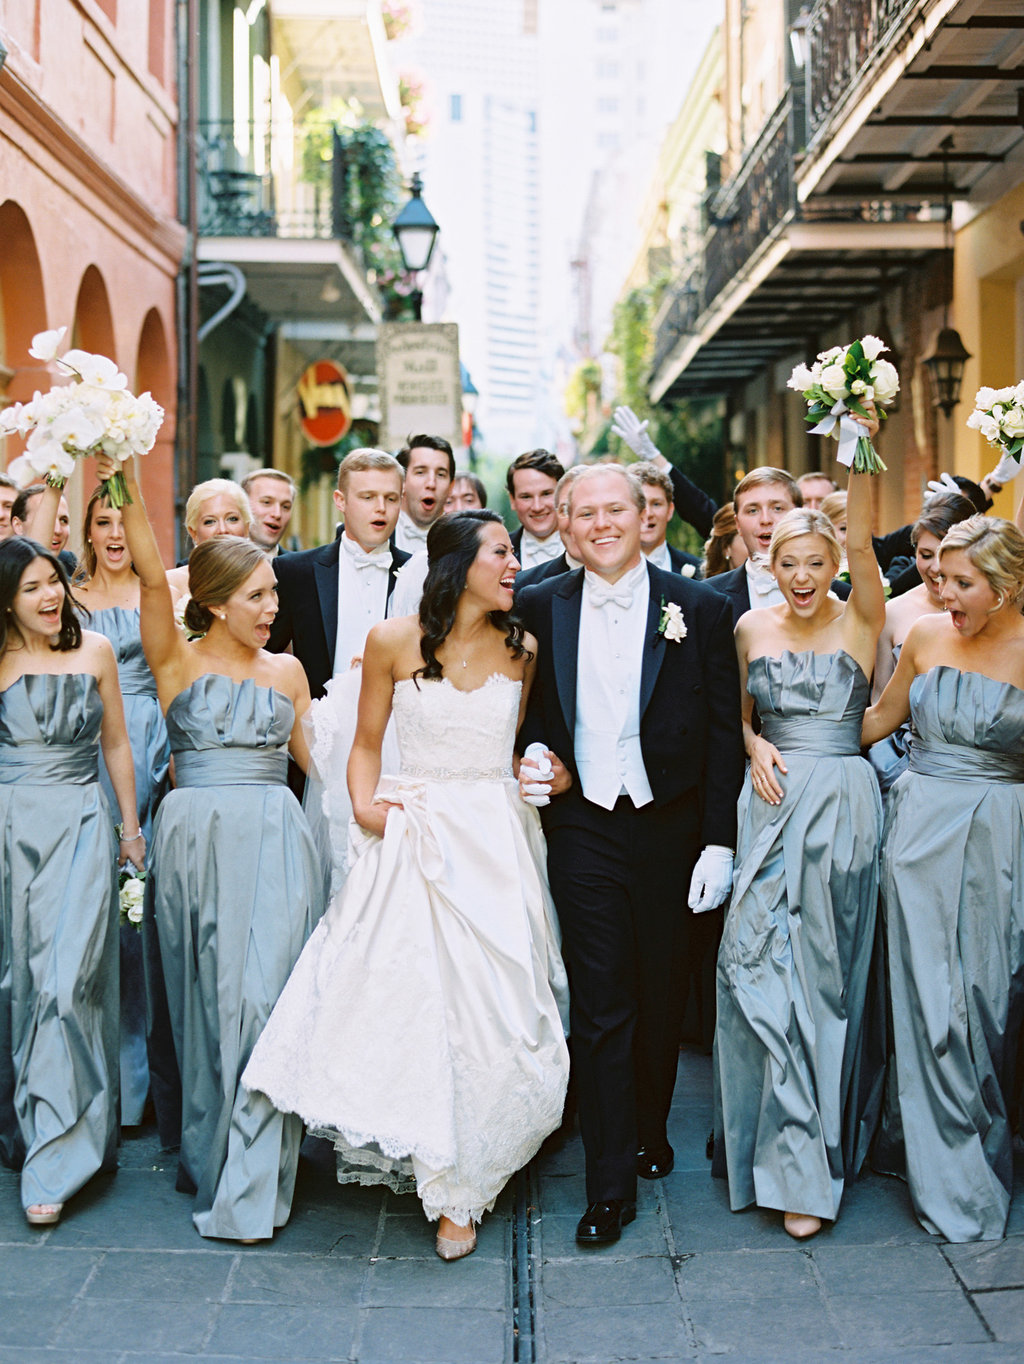 bridal party in light blue strapless dresses cheering on the bride and groom in the French Quarter in New Orleans